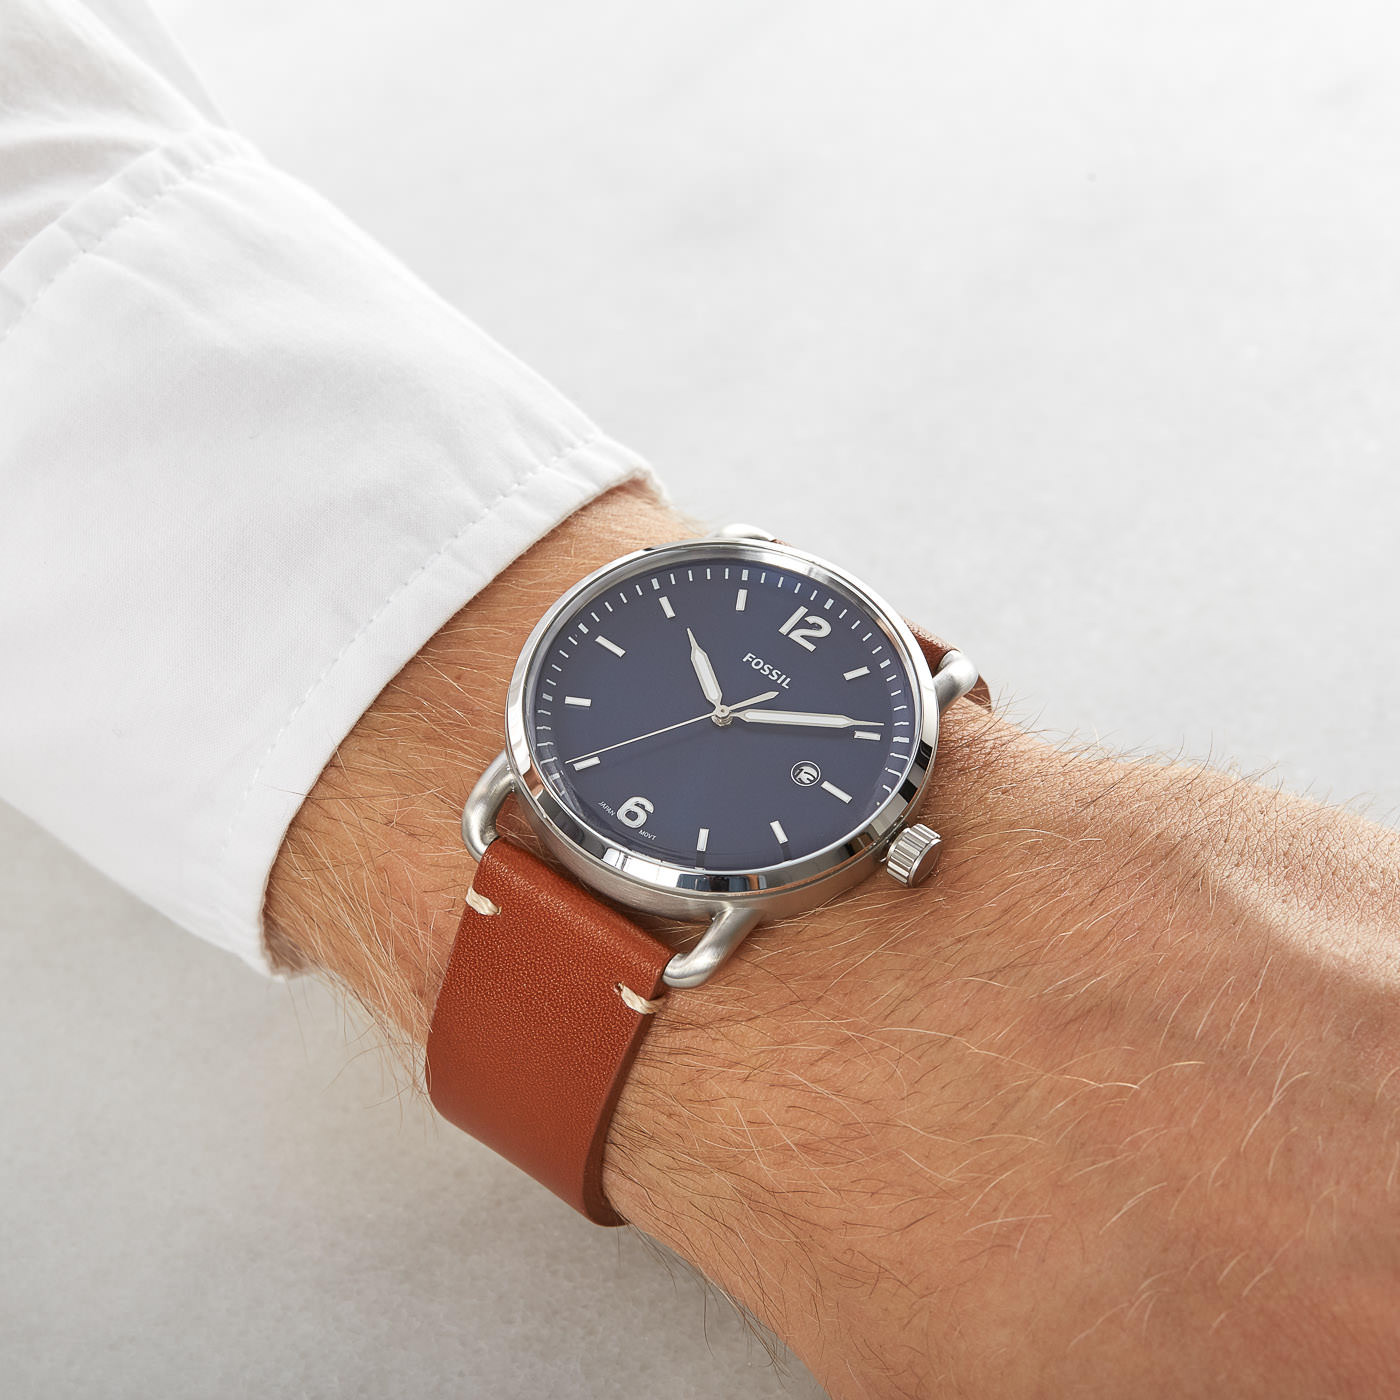 52e01d23be7d Fossil FS5325 The Commuter Three Hand Date Brown Leather Blue Dial Watch  NIB. Fossil The Commuter